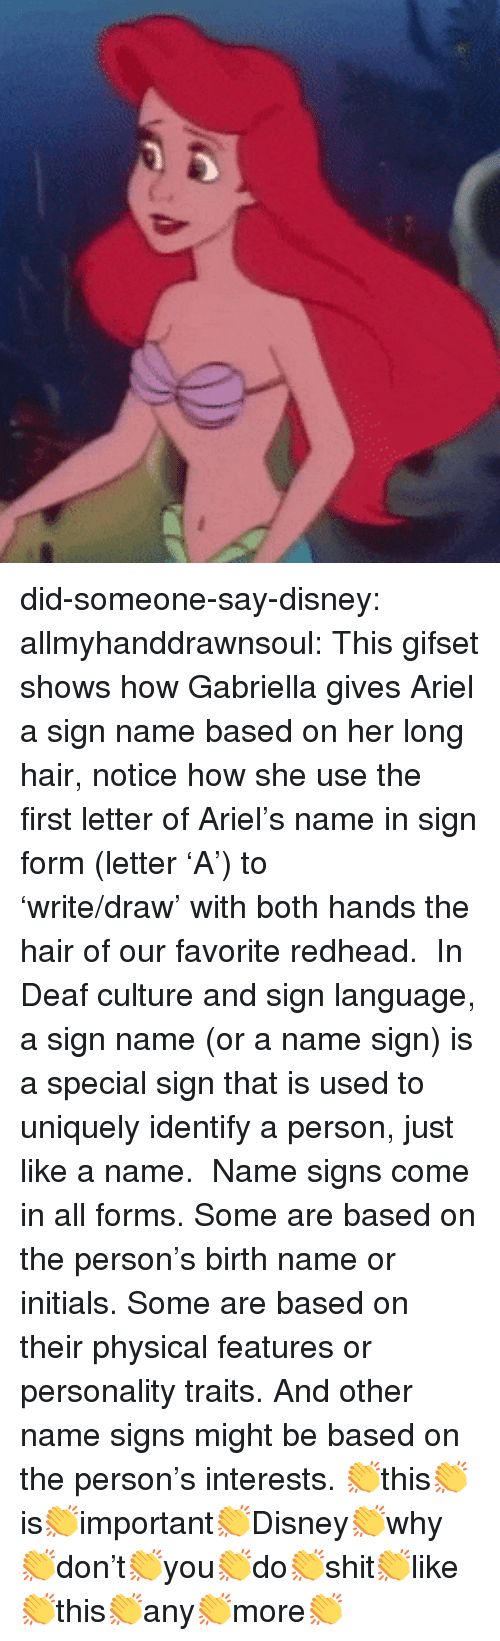 redhead: did-someone-say-disney: allmyhanddrawnsoul:    This gifset shows how Gabriella gives Ariel a sign name based on her long hair, notice how she use the first letter of Ariel's name in sign form (letter 'A') to 'write/draw' with both hands the hair of our favorite redhead.    In Deaf culture and sign language, a sign name (or a name sign) is a special sign that is used to uniquely identify a person, just like a name.    Name signs come in all forms. Some are based on the person's birth name or initials. Some are based on their physical features or personality traits. And other name signs might be based on the person's interests.     👏this👏is👏important👏Disney👏why👏don't👏you👏do👏shit👏like👏this👏any👏more👏